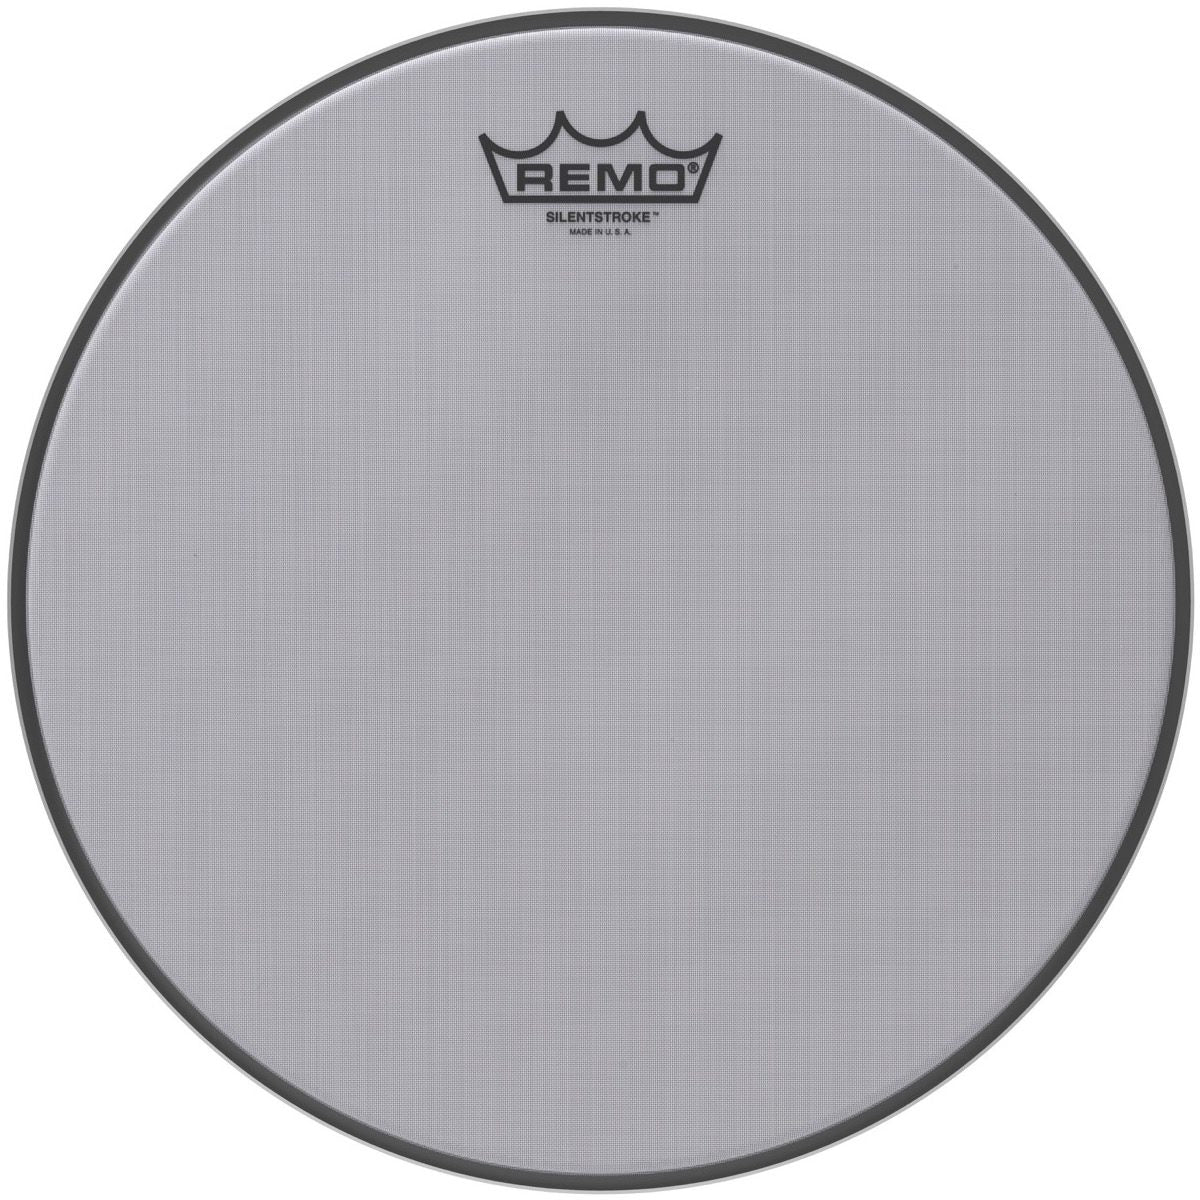 Remo Silentstroke White Mesh Drumhead, 12 Inch